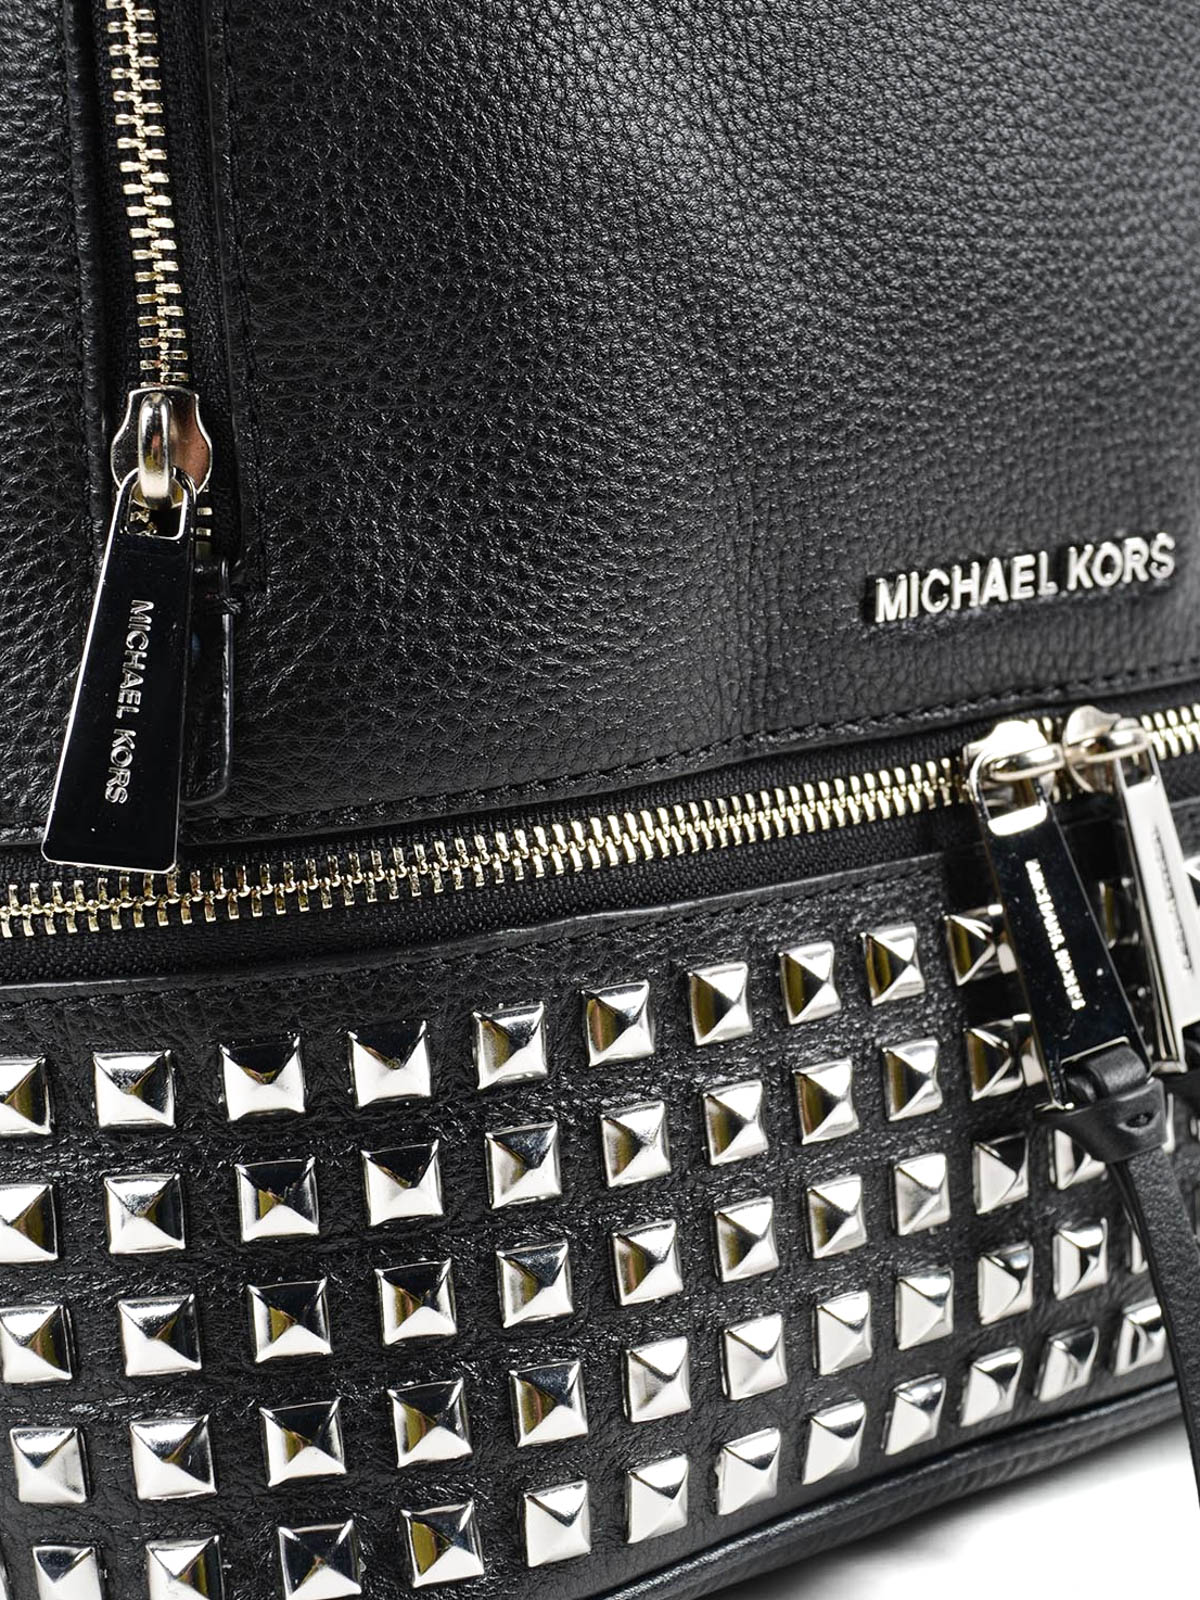 55939c7506f7 wholesale michael kors extra small studded backpack 0add7 34f6c; get rhea small  studded leather backpack shop online michael kors 9460a 1463e